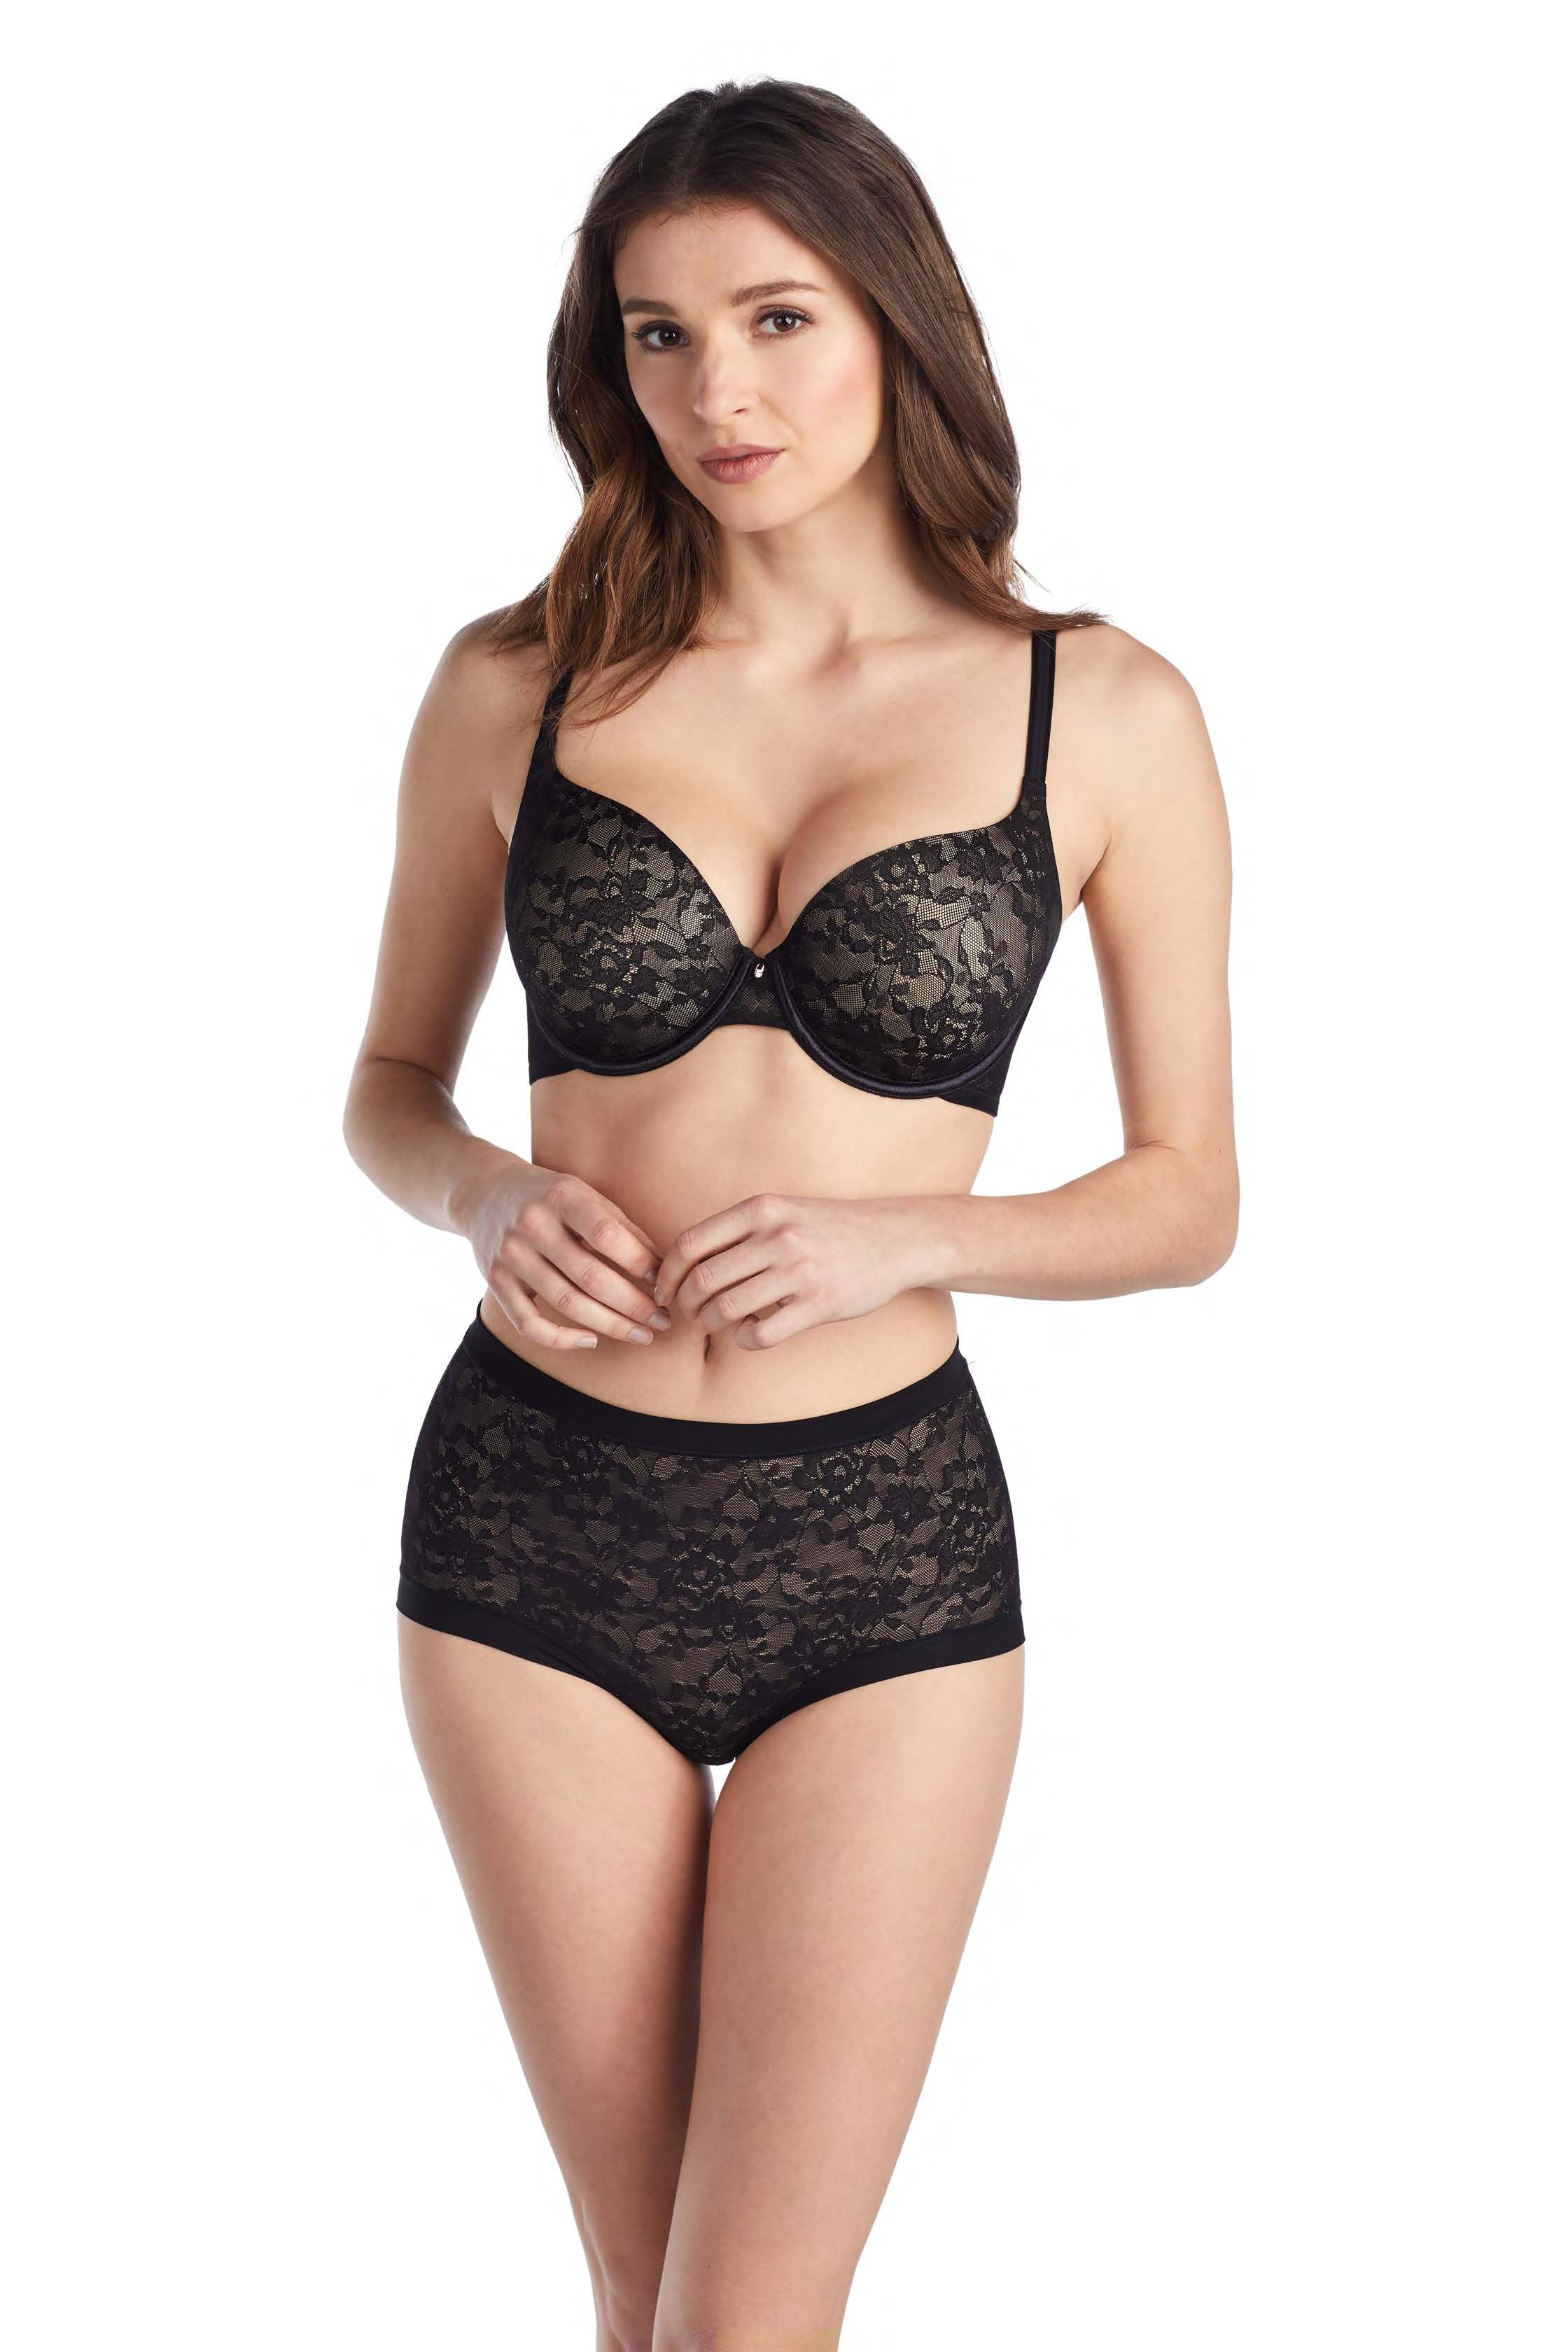 Lace Perfection T-Shirt Bra - Black